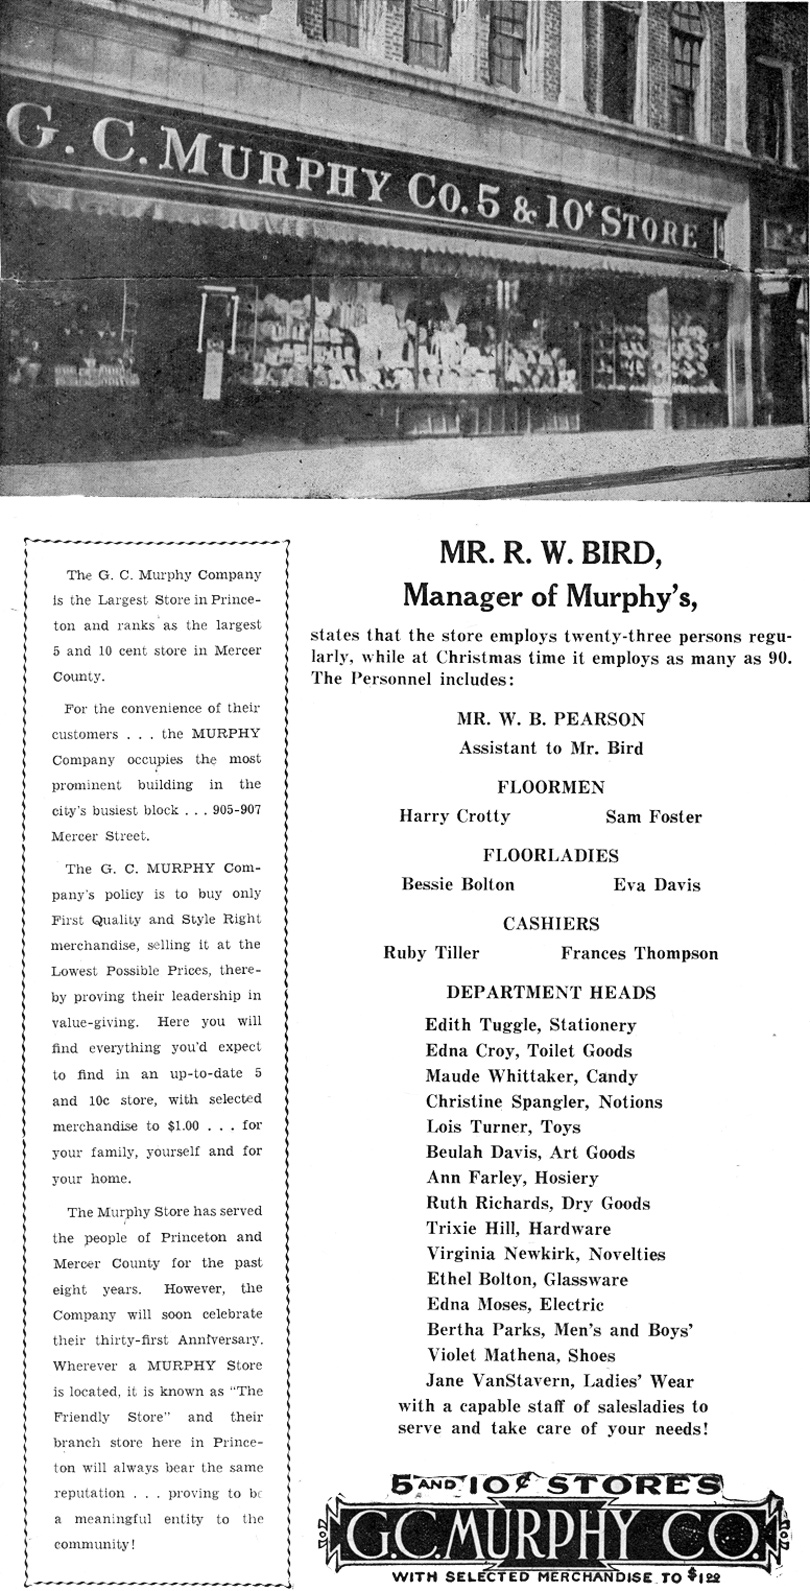 G. C. Mrphy Company Advertisement on August 5, 1937